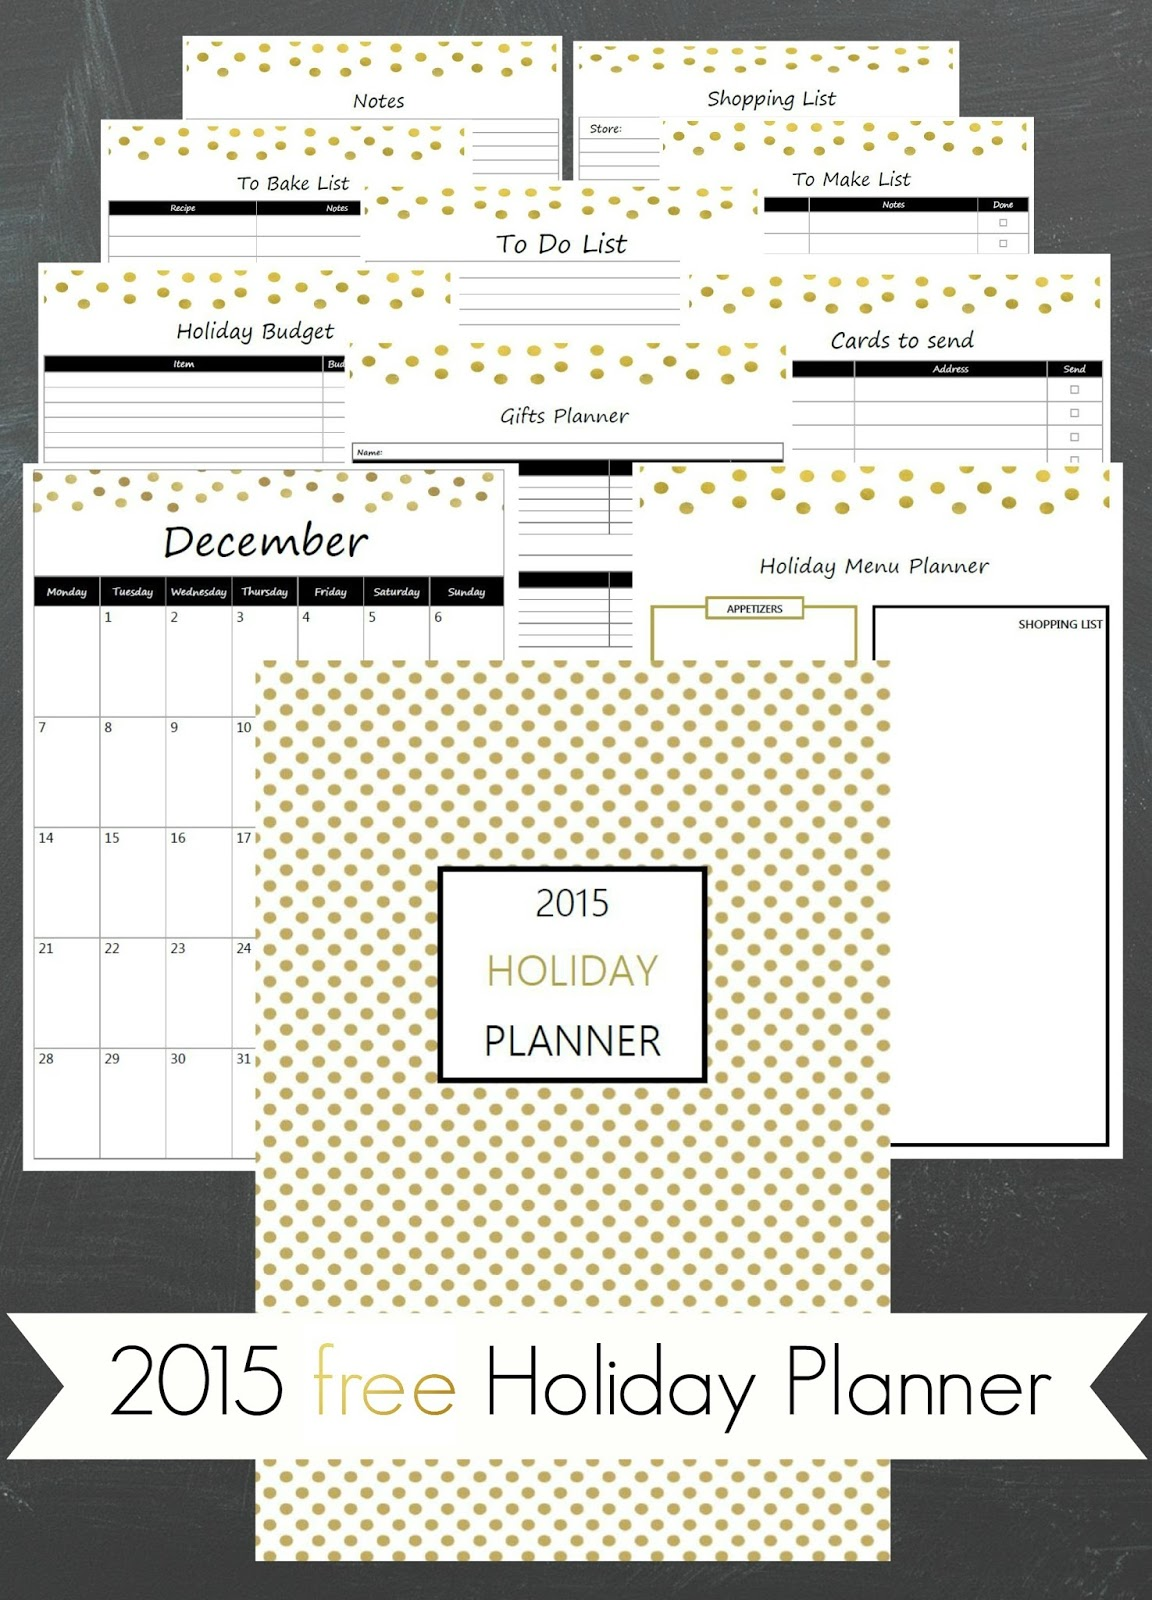 Ioanna's Notebook - 2015 Free printable Holiday Planner